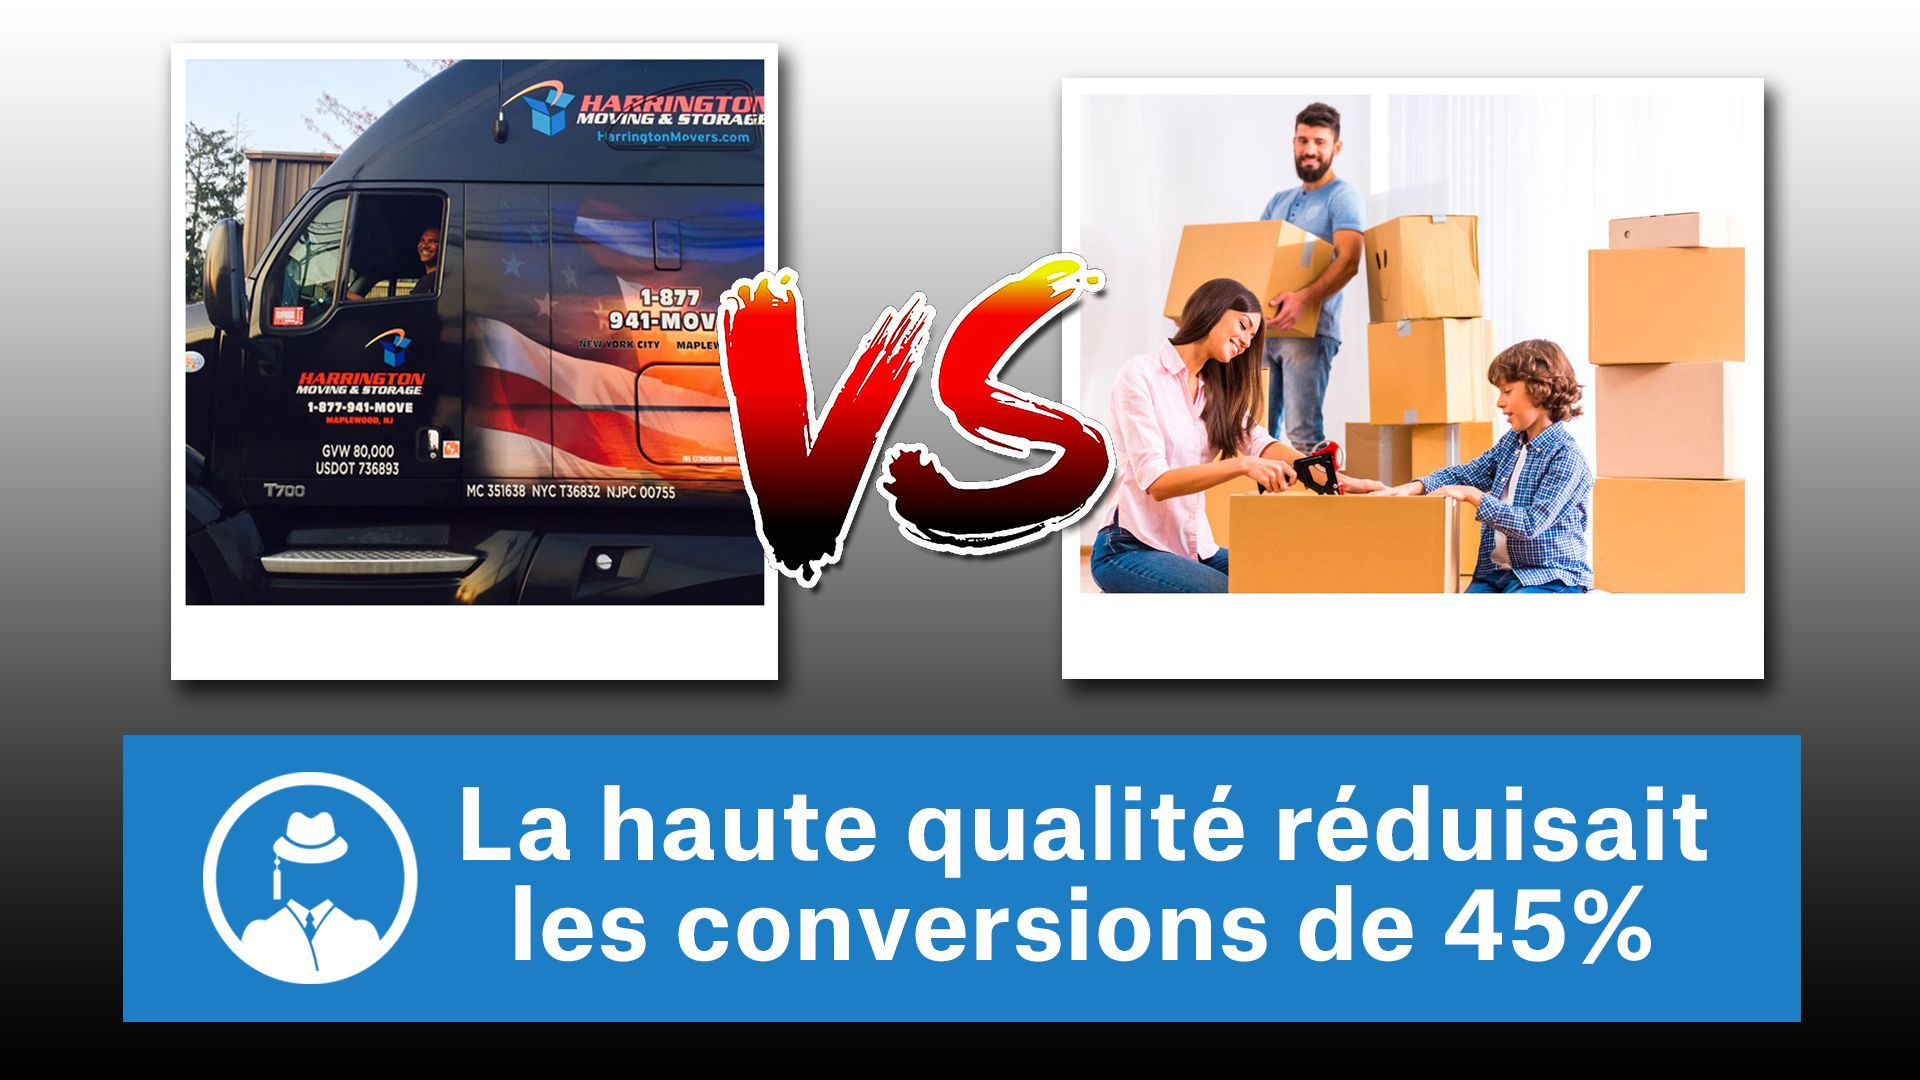 La grande qualité réduisait les conversions de 45% #GrowthHacking #WebMarketing #FormationGrowthHacking #CentreDeFormationFrance #TunnelAARRR #AARRR #SocialMedia #CommunityManagement #SEO #MarketingDigital #SiteWeb